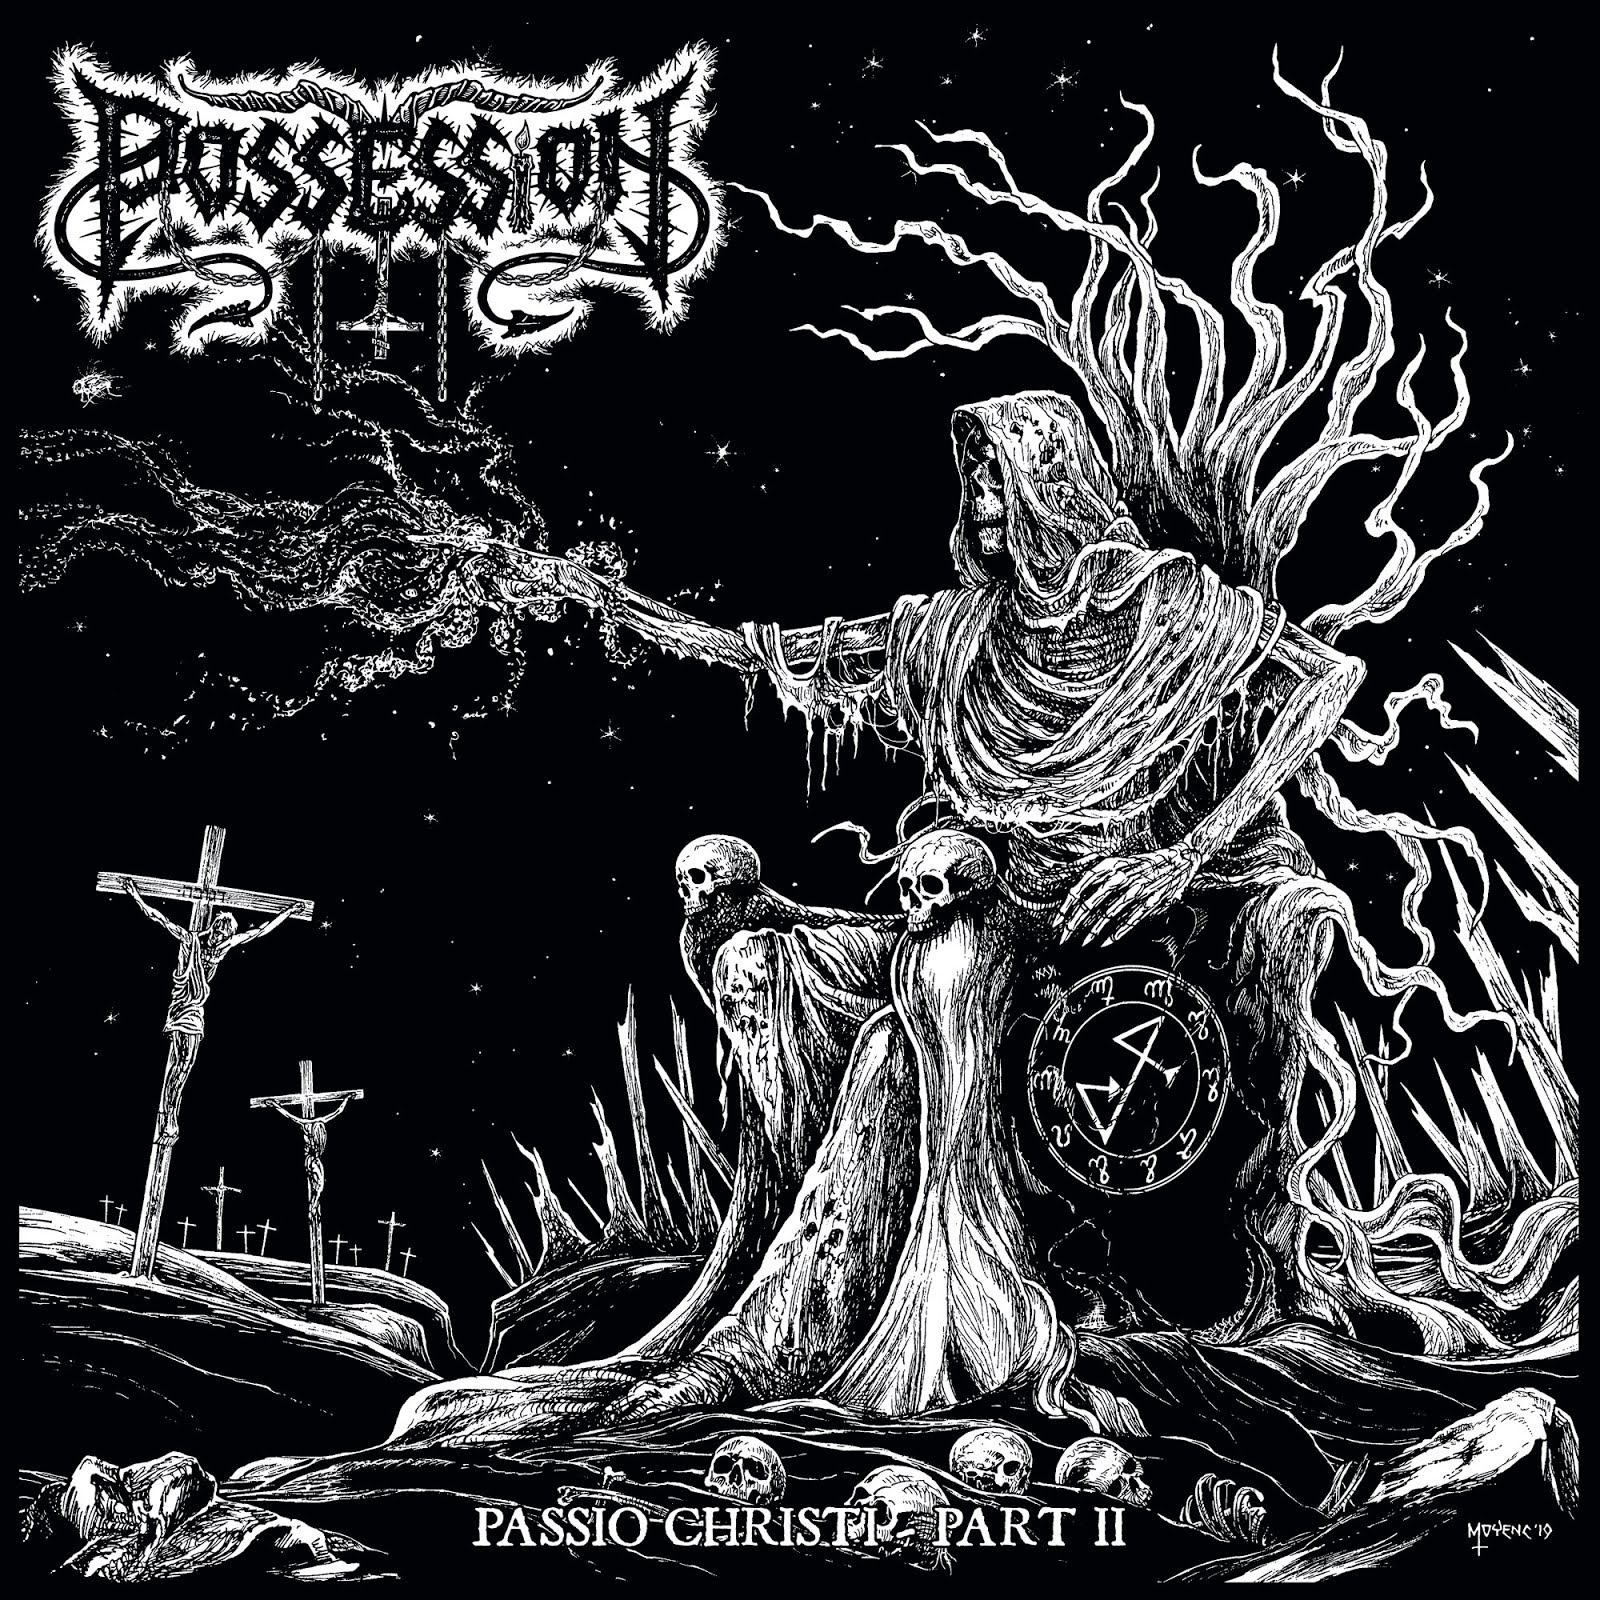 Possession, Spite & Venefixion - Passio Christi Part I + Part II - Press Release.